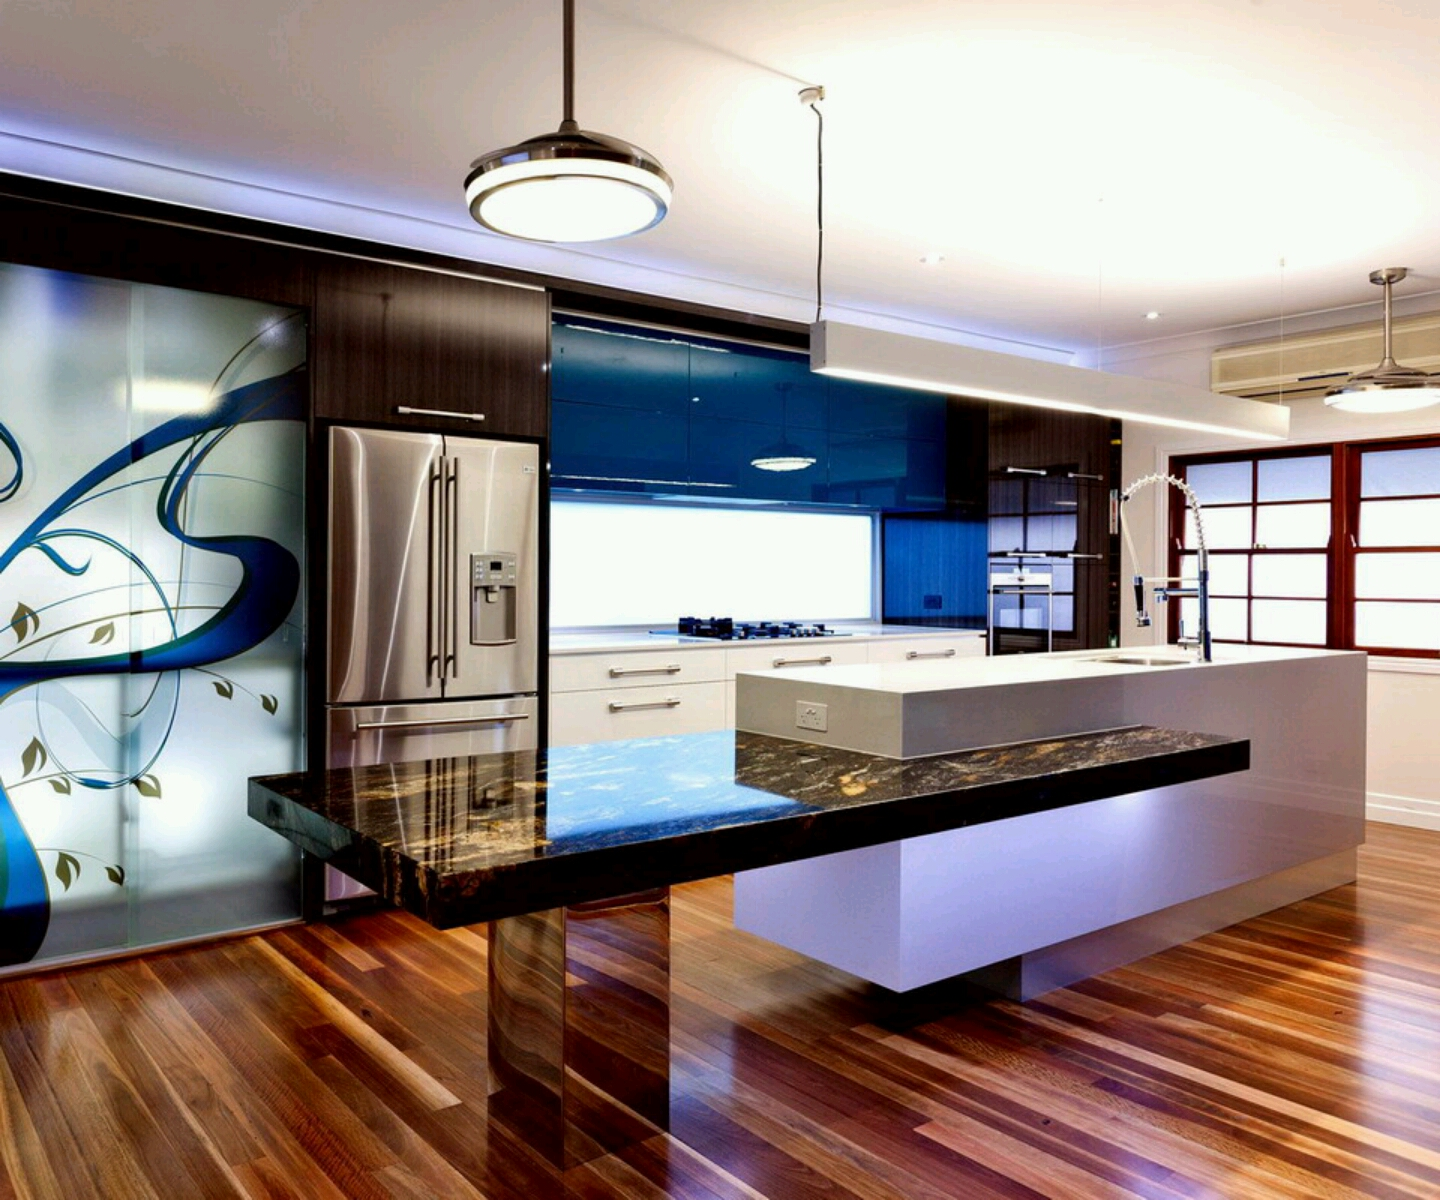 Ultra modern kitchen designs ideas new home designs for New home design ideas